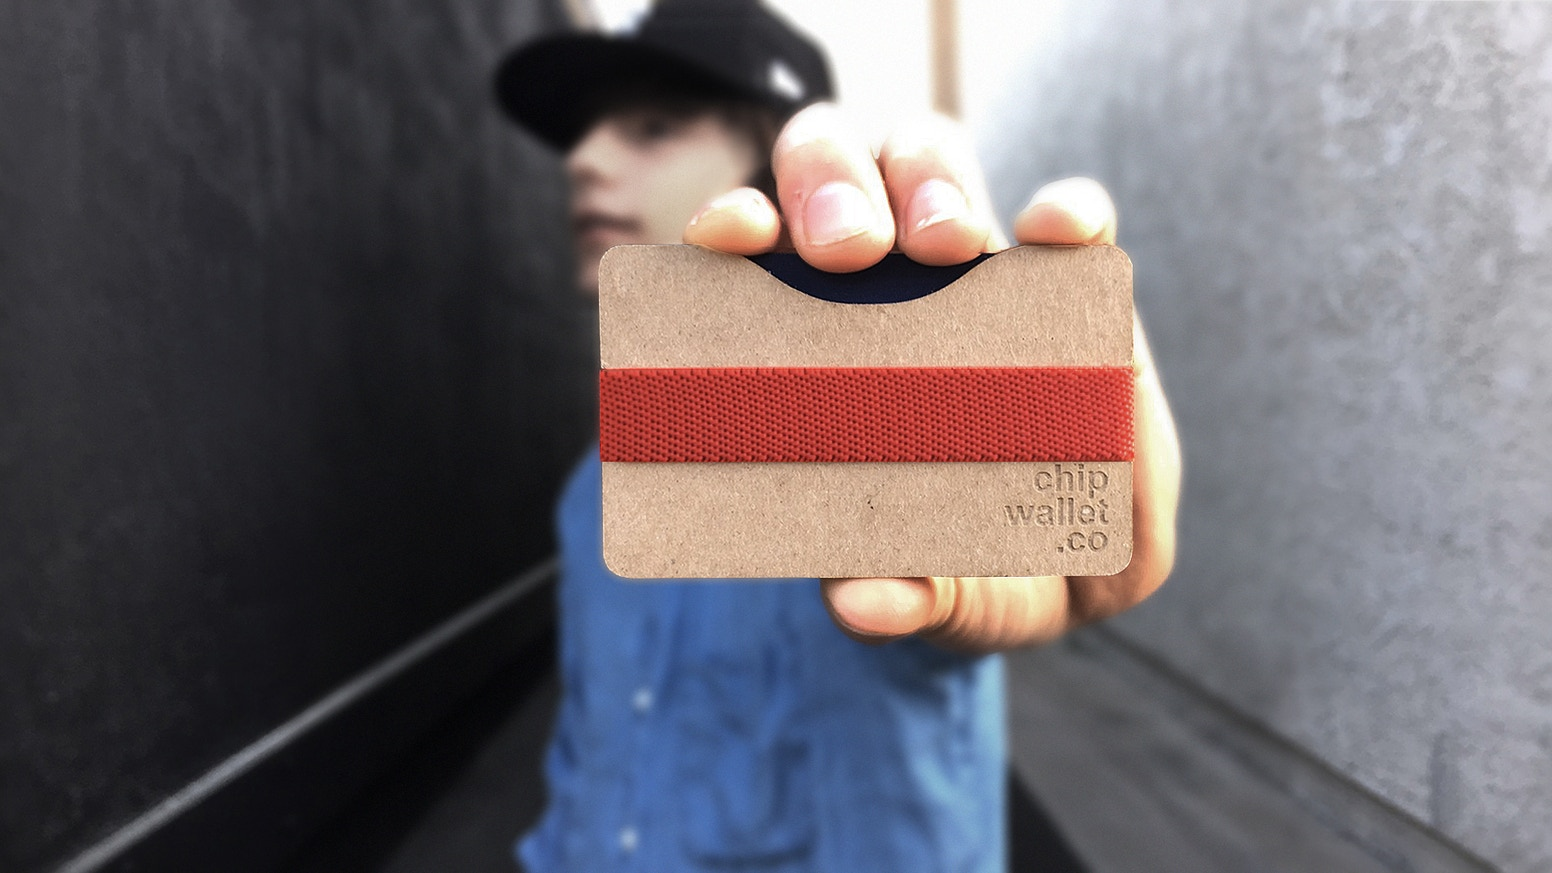 A revolutionary slim wallet made from all natural chipboard with modular plates to fit your lifestyle. Pop it. Assemble it. Carry it.